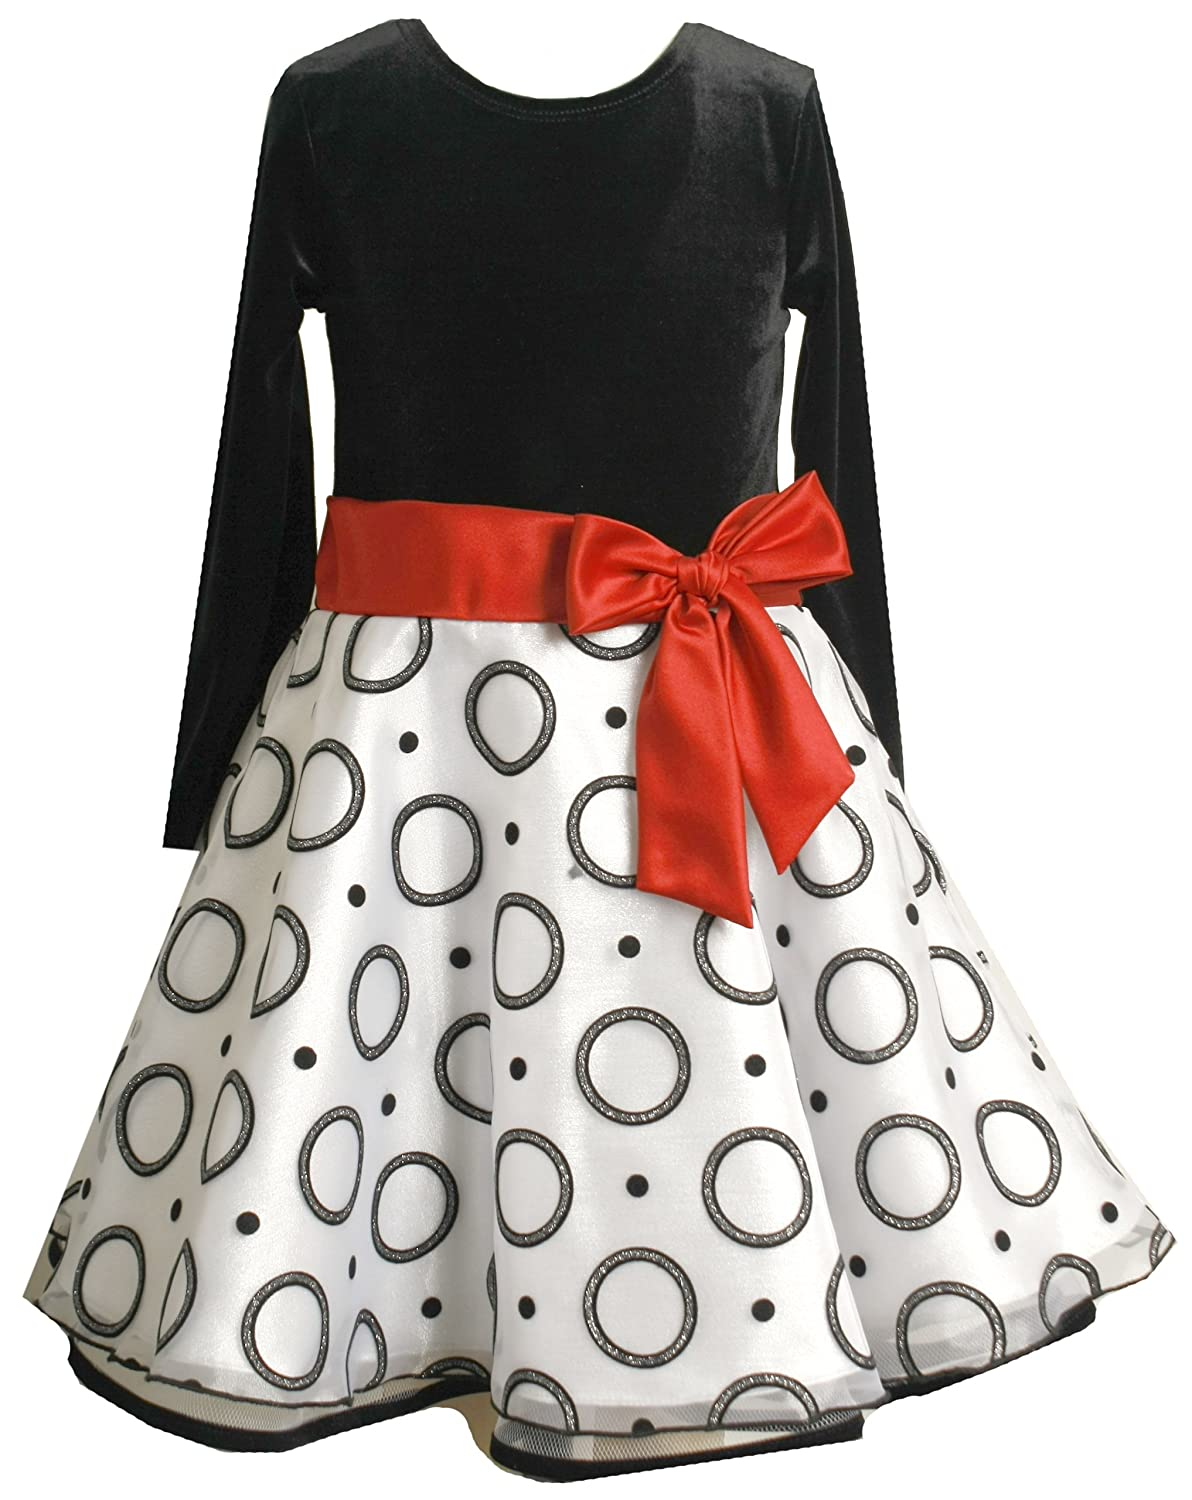 Girls Party Dresses: Adorable Picks